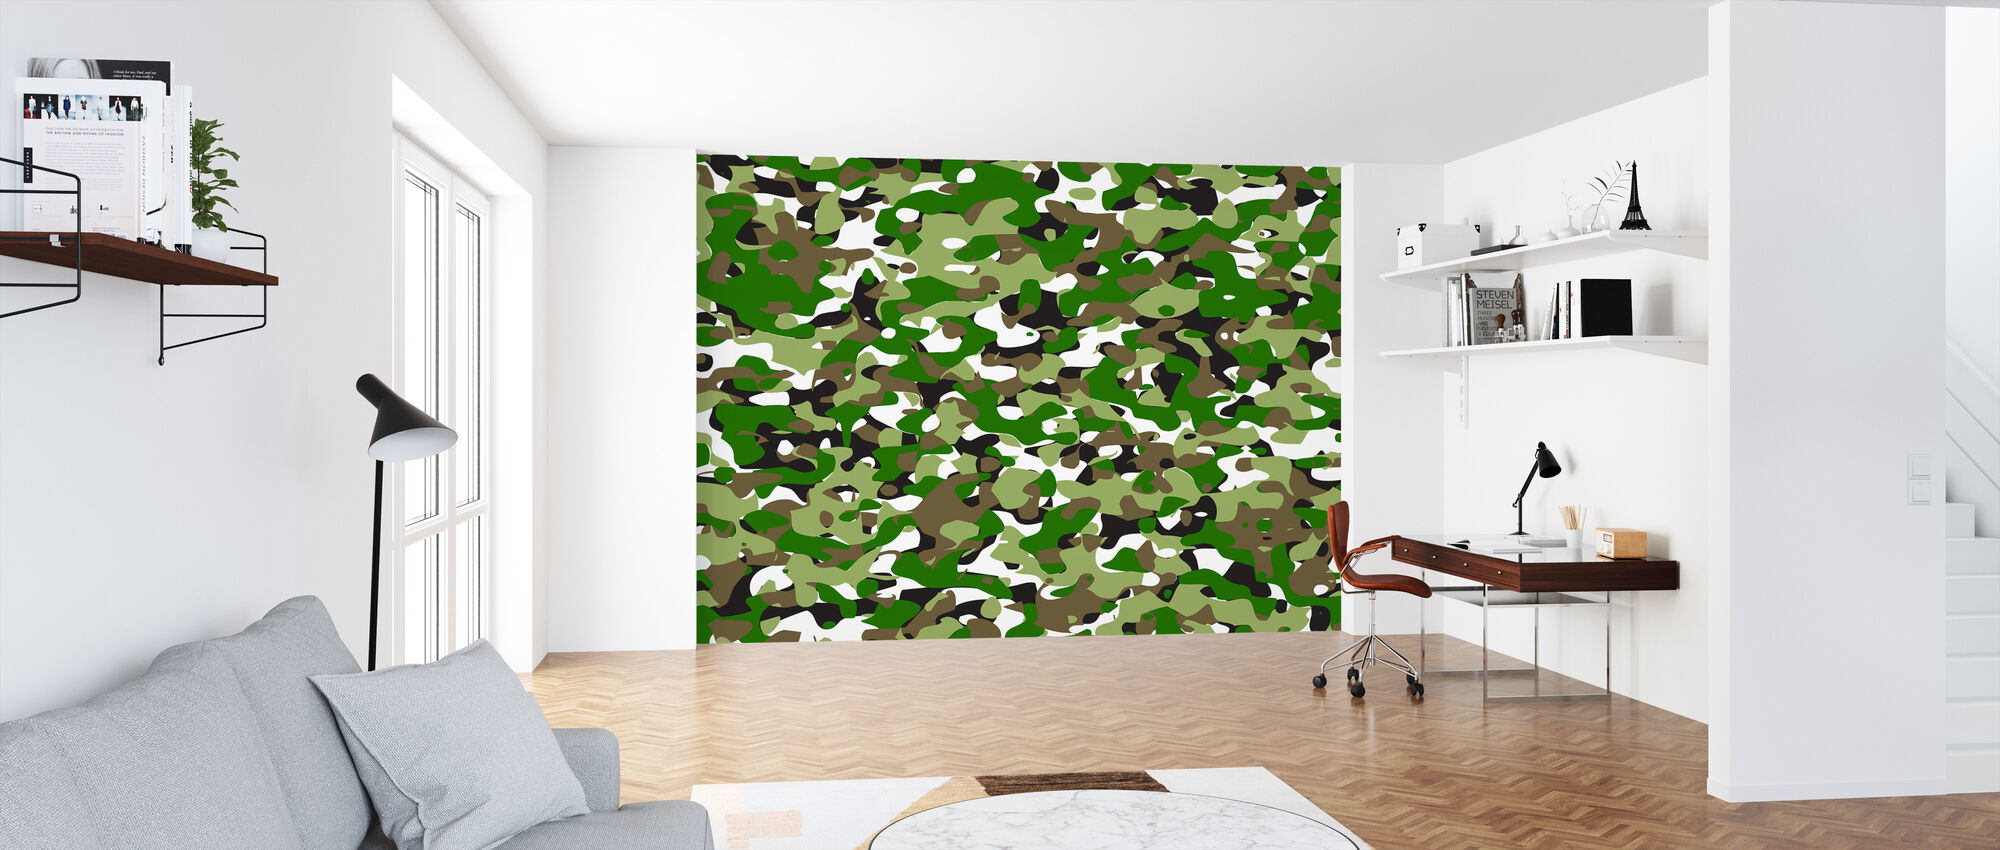 Camouflage - Green - Wallpaper - Office